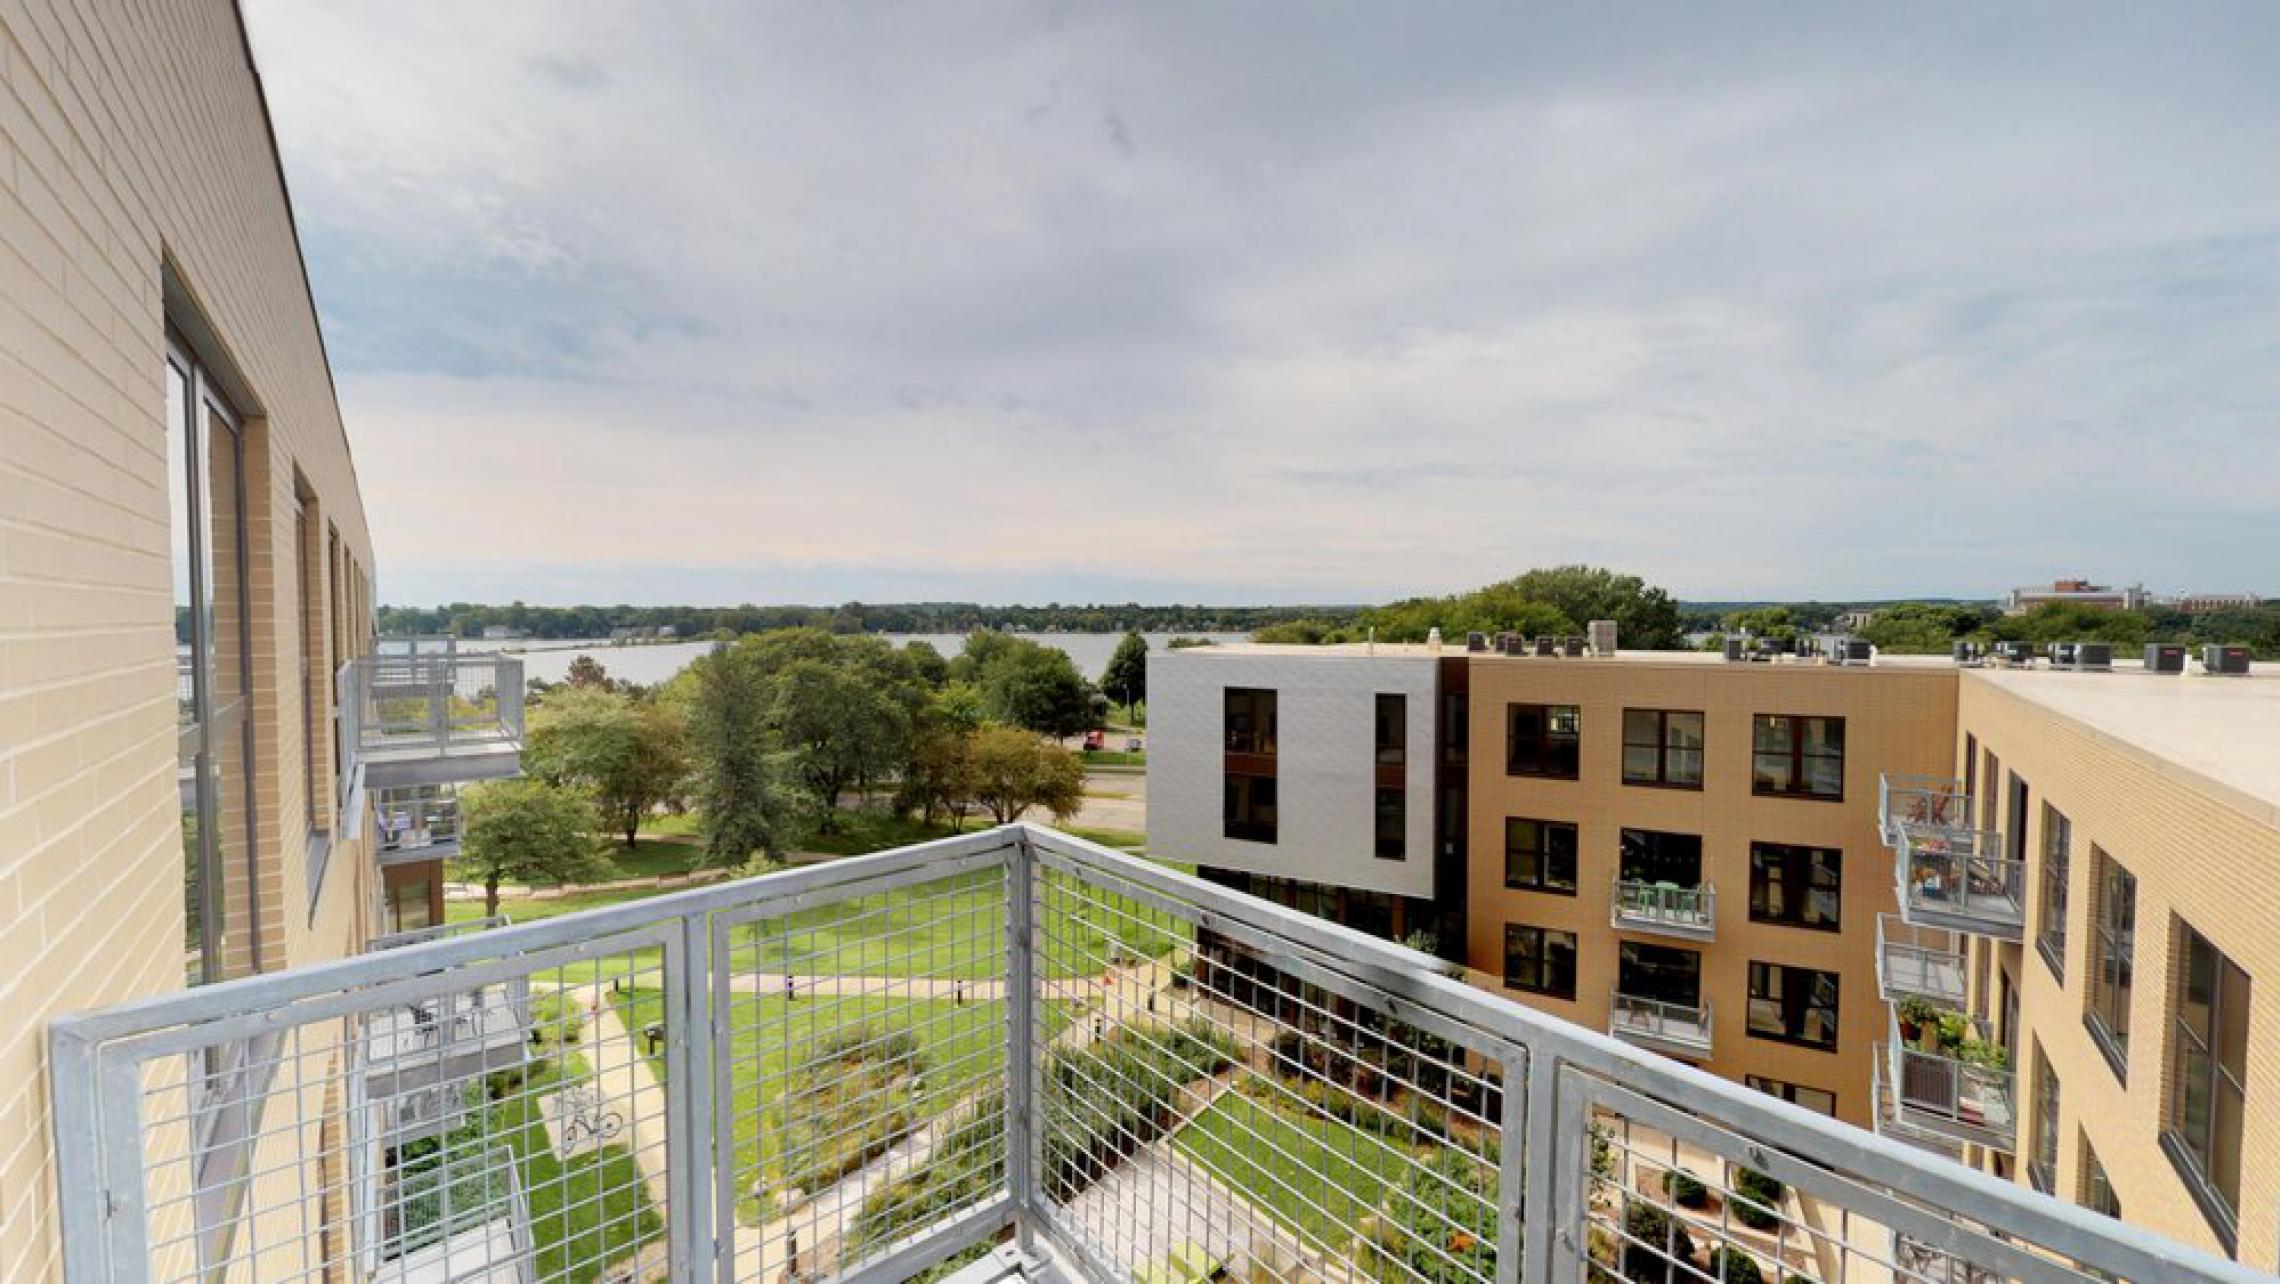 SEVEN27 - Apartments - 529 - Lake View - top floor - balcony - modern